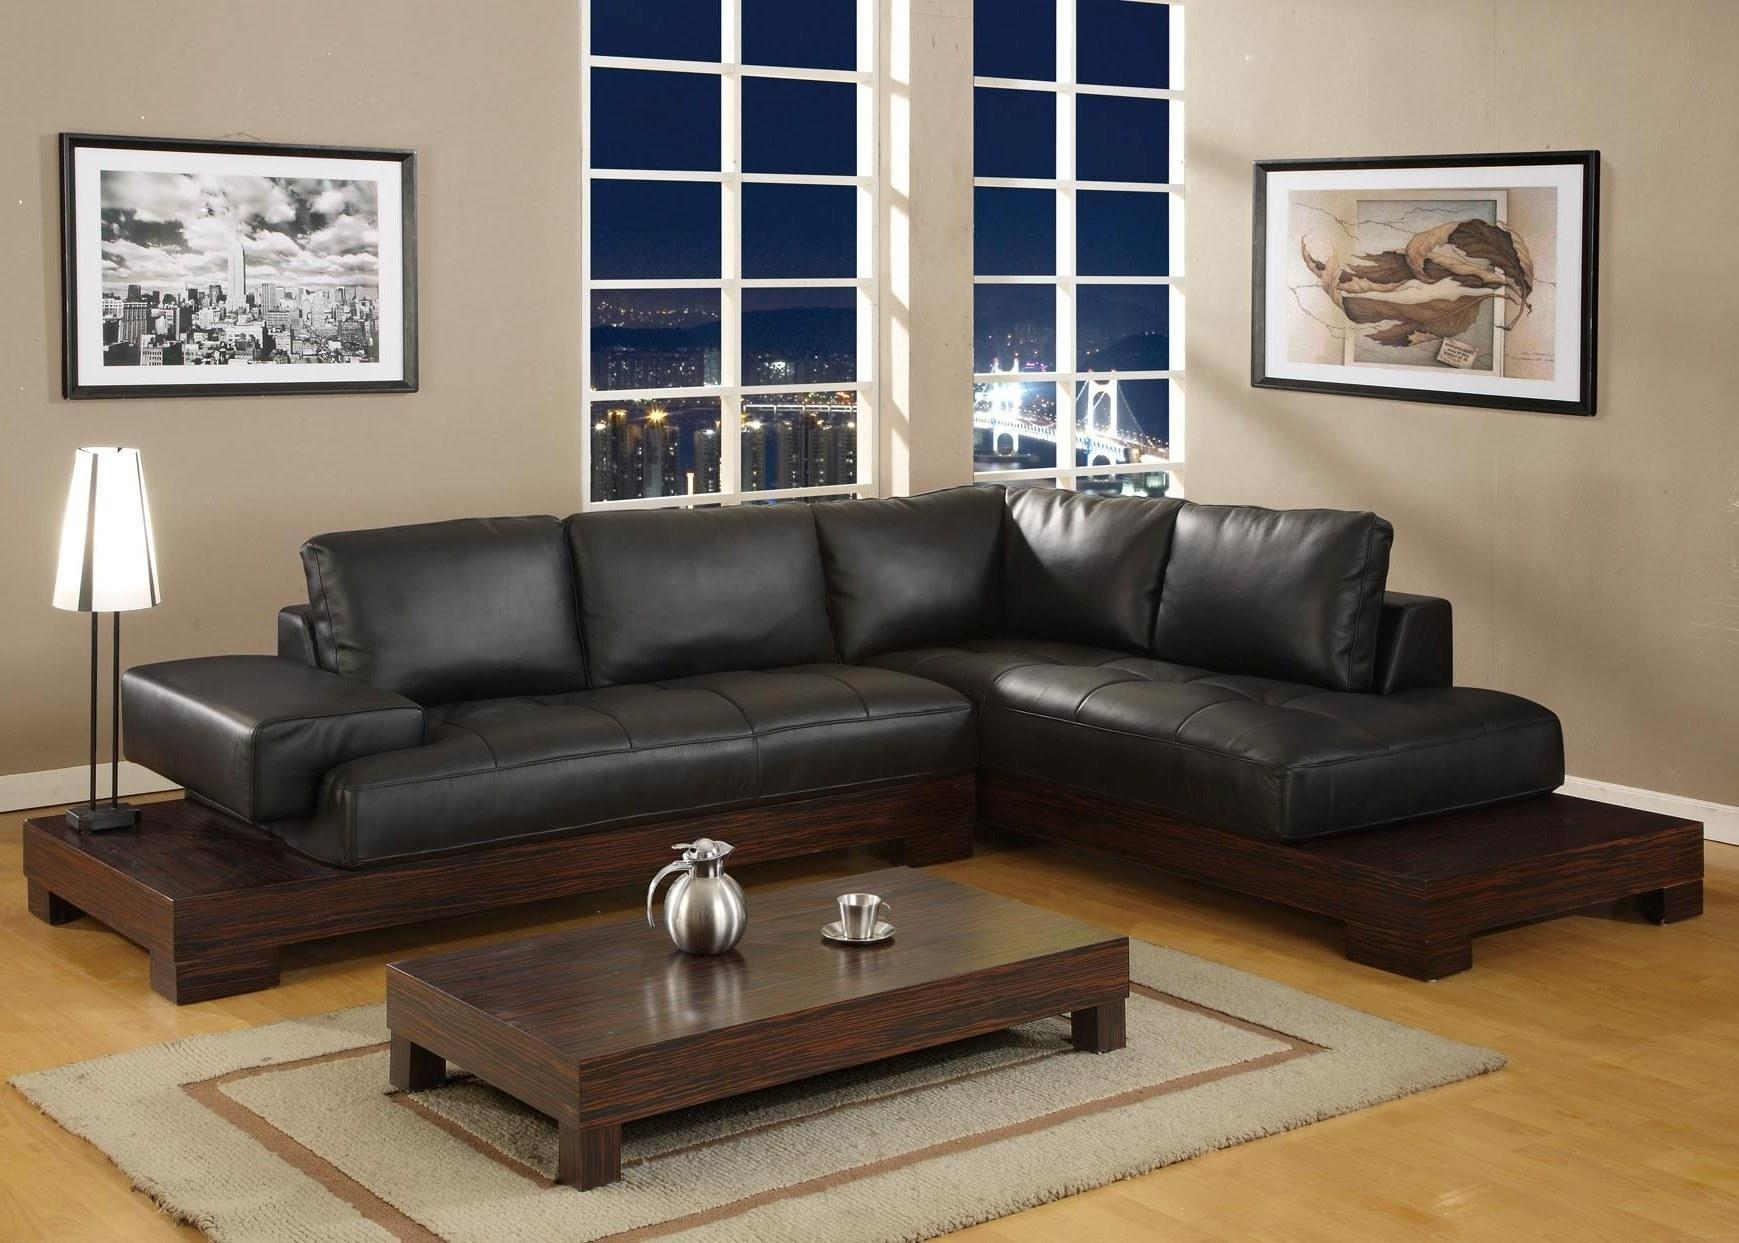 Awesome Living Room Ideas Black Leather Sofa | Greenvirals Style For Black Sofas For Living Room (View 4 of 20)